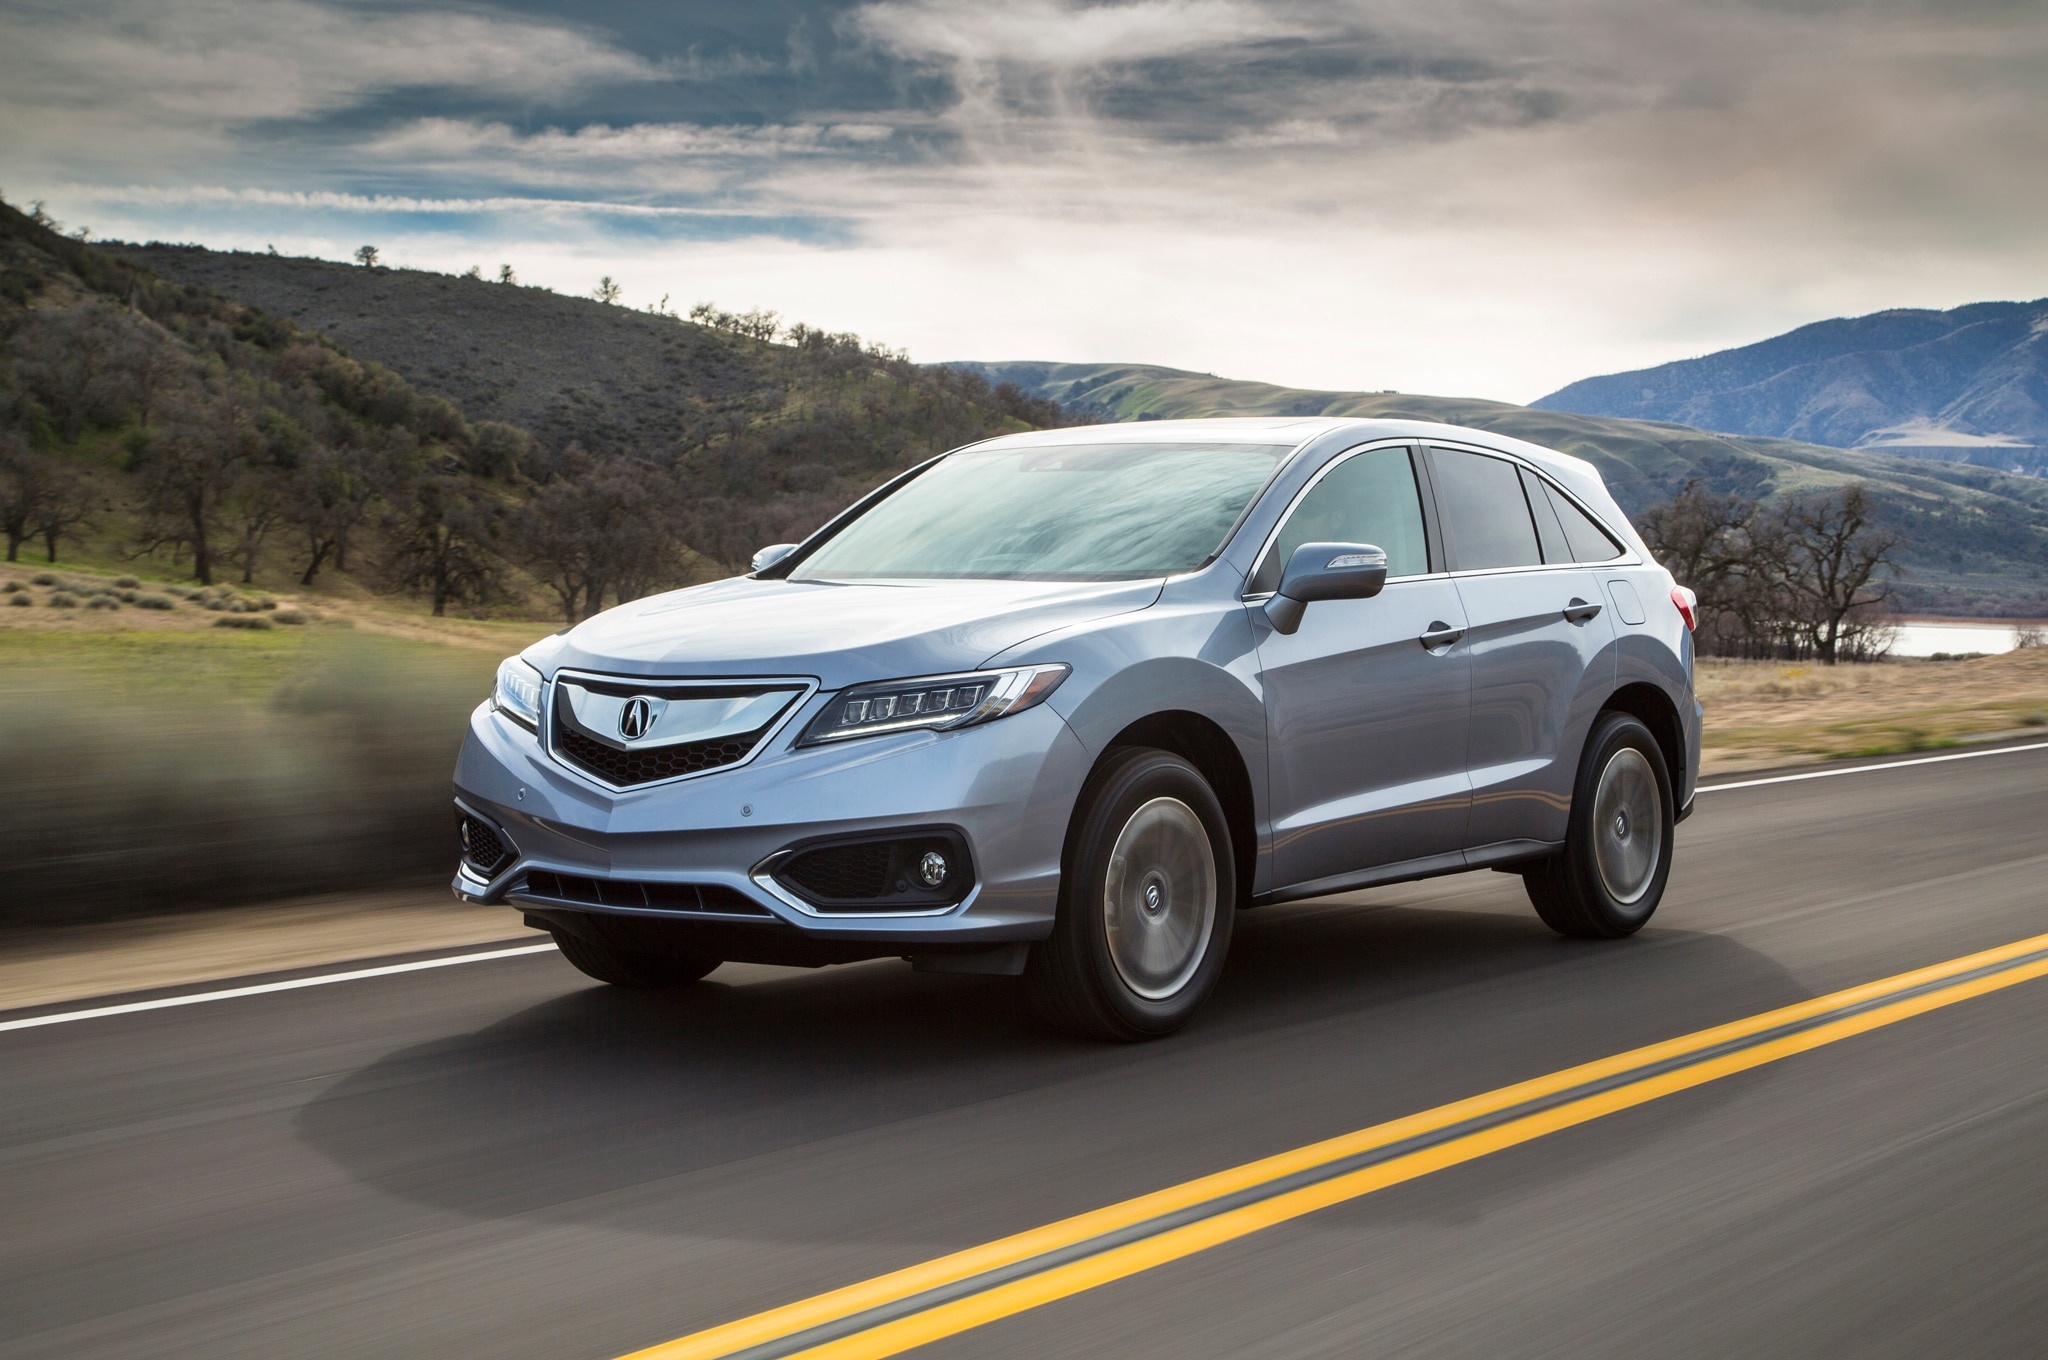 2016 Acura RDX Front Three Quarter In Motion